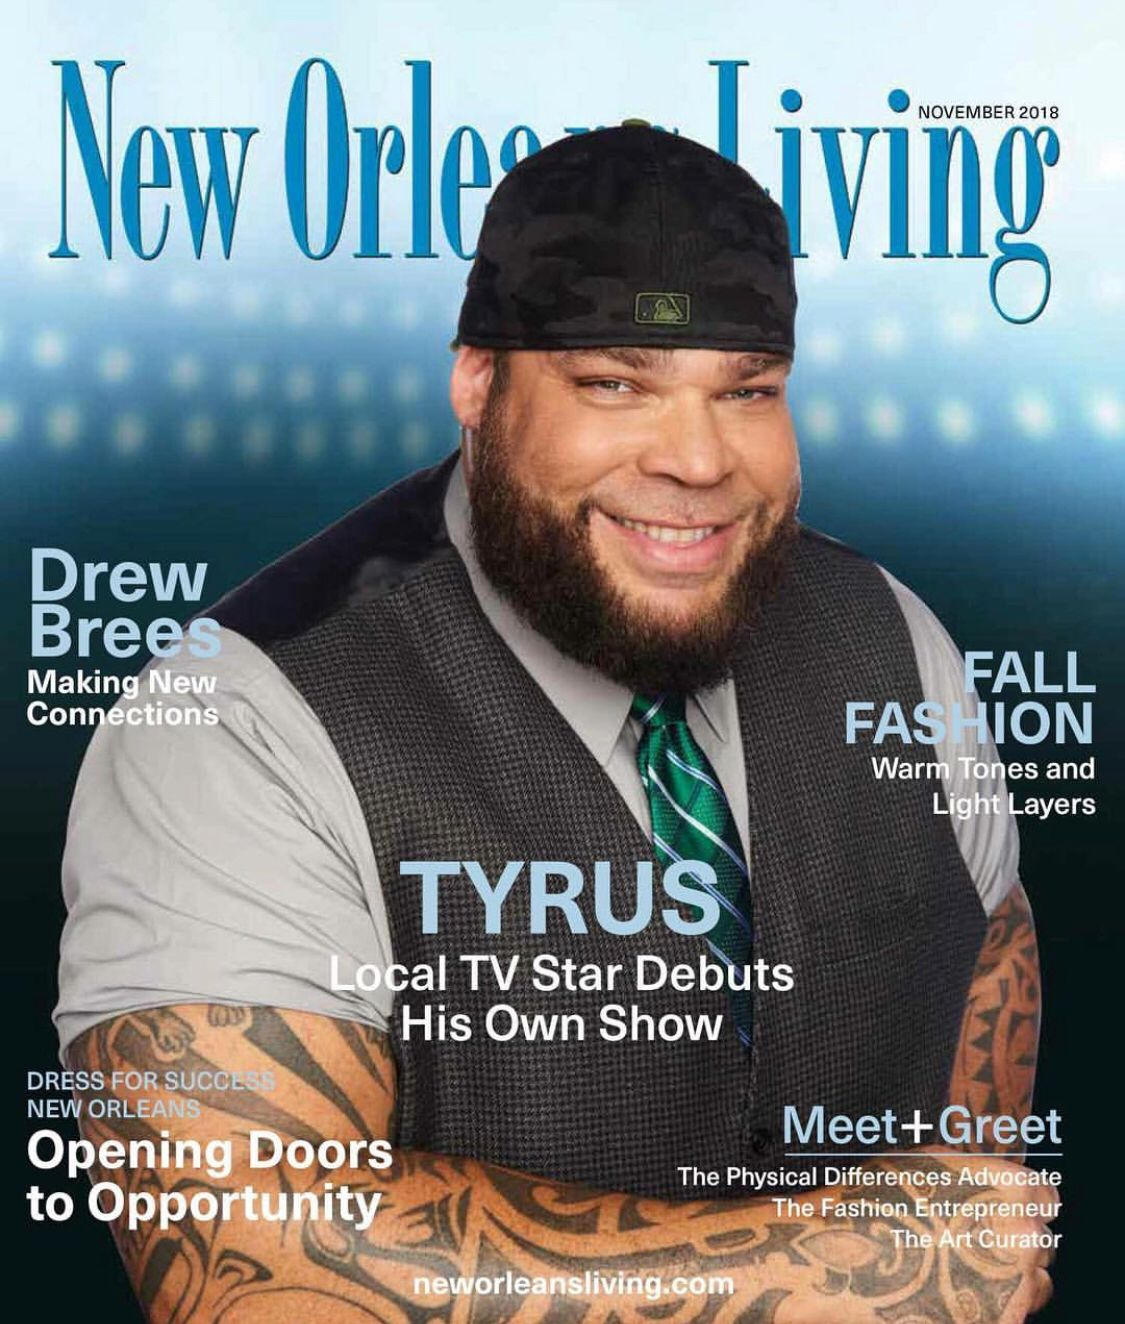 Tyrus Fox News host and former #wwe wrestler talks about his